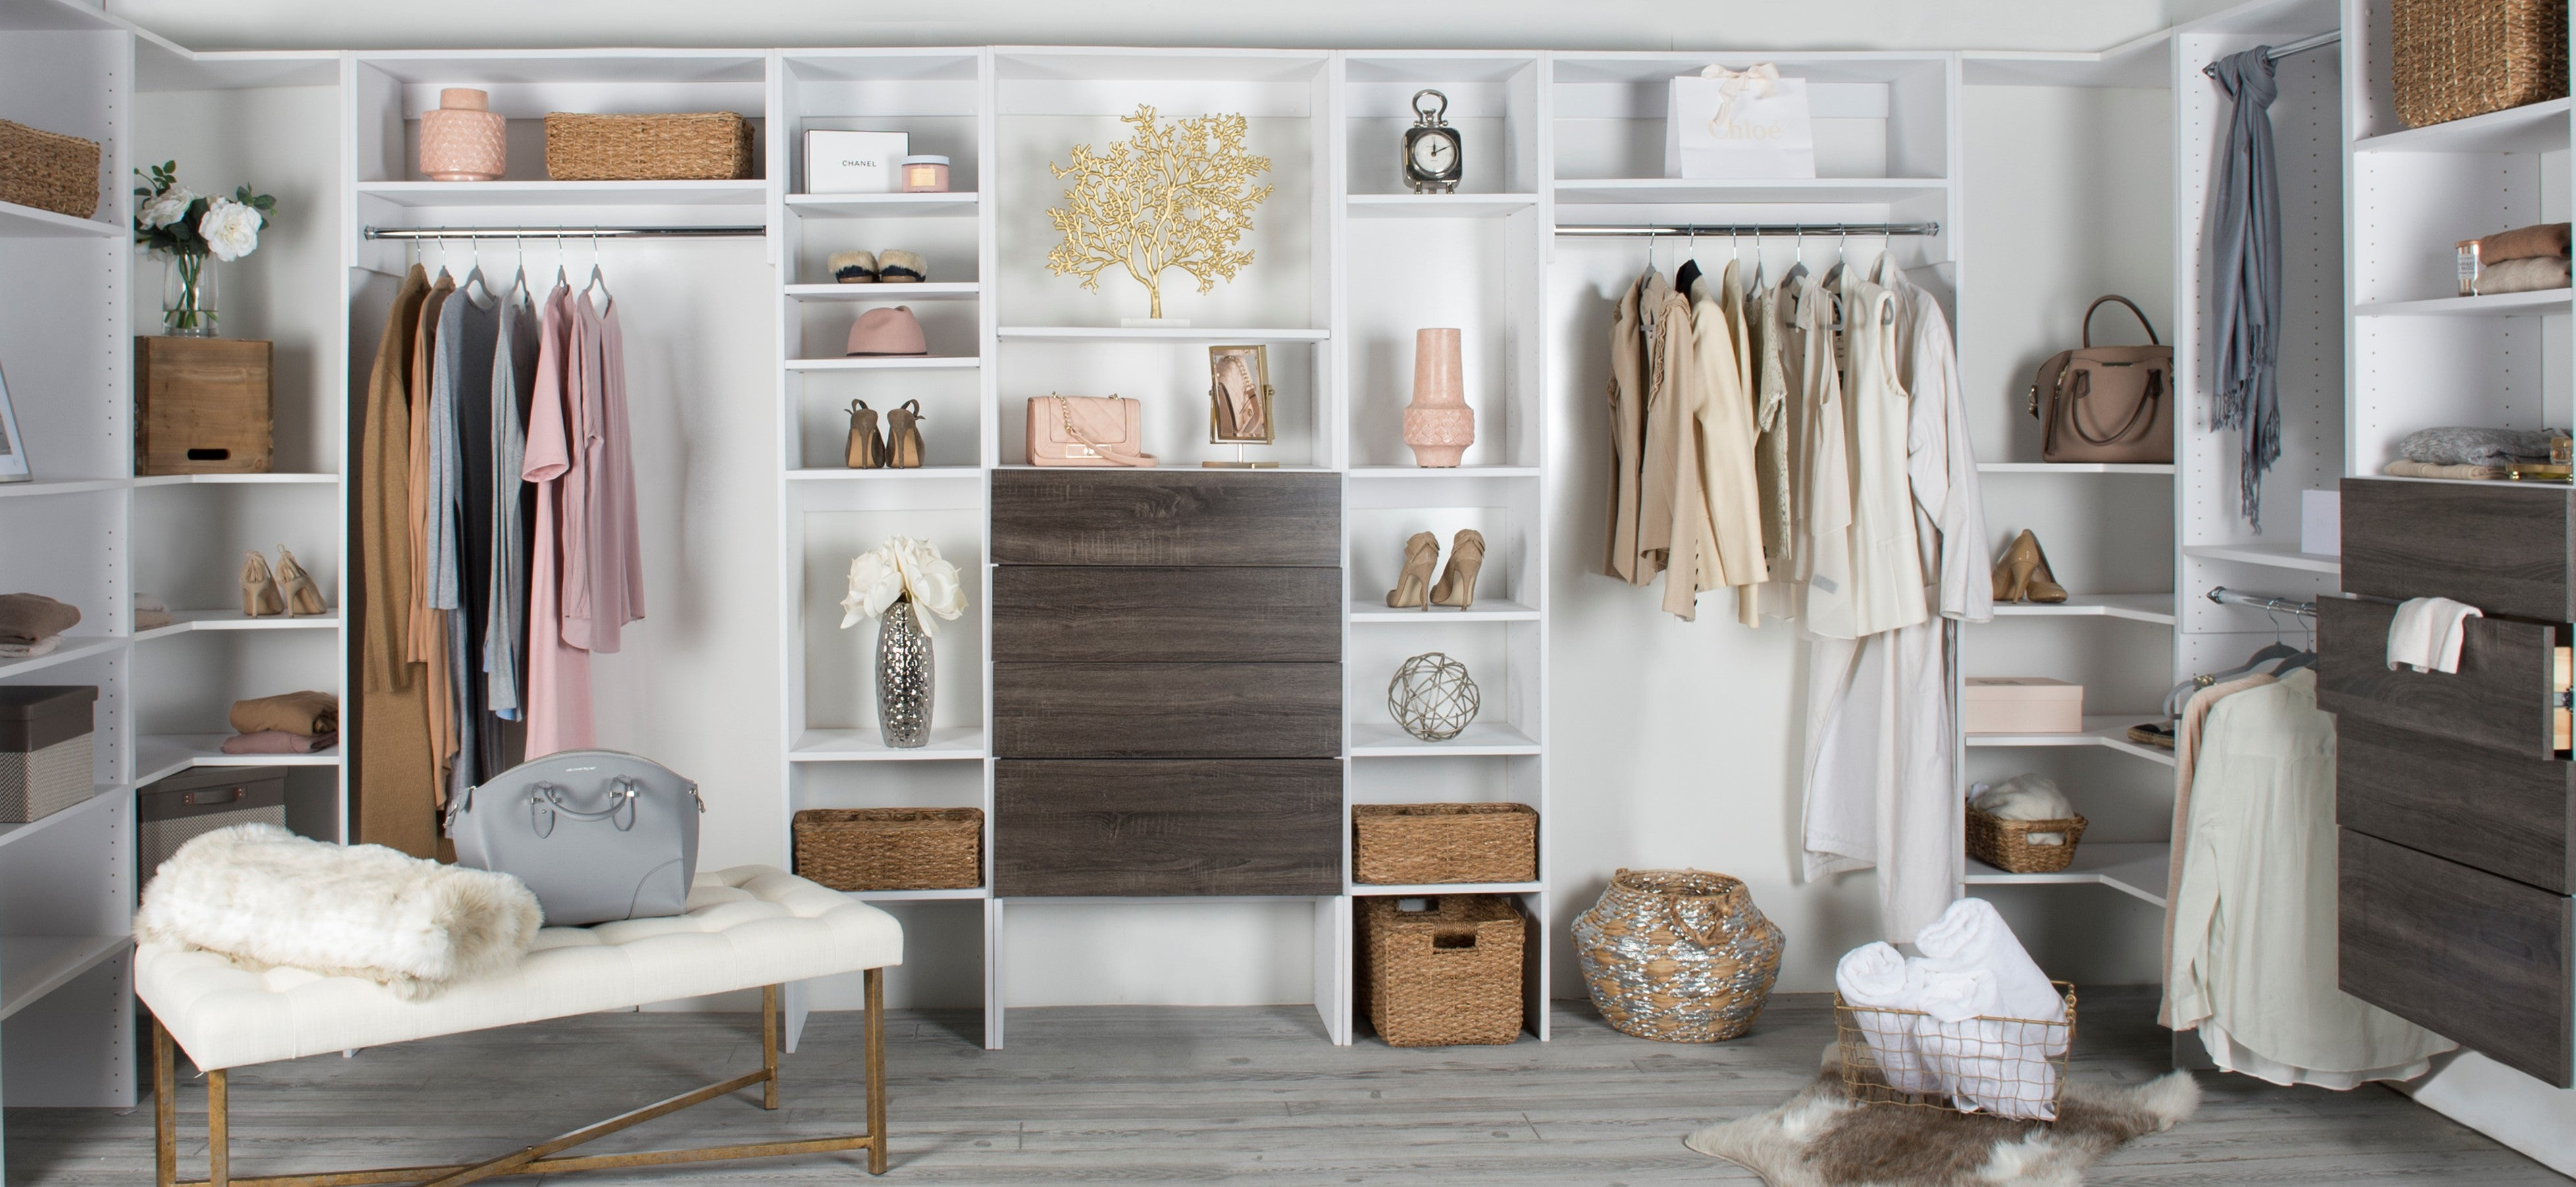 organizing organized classy closet to how kids a closets organize clutter